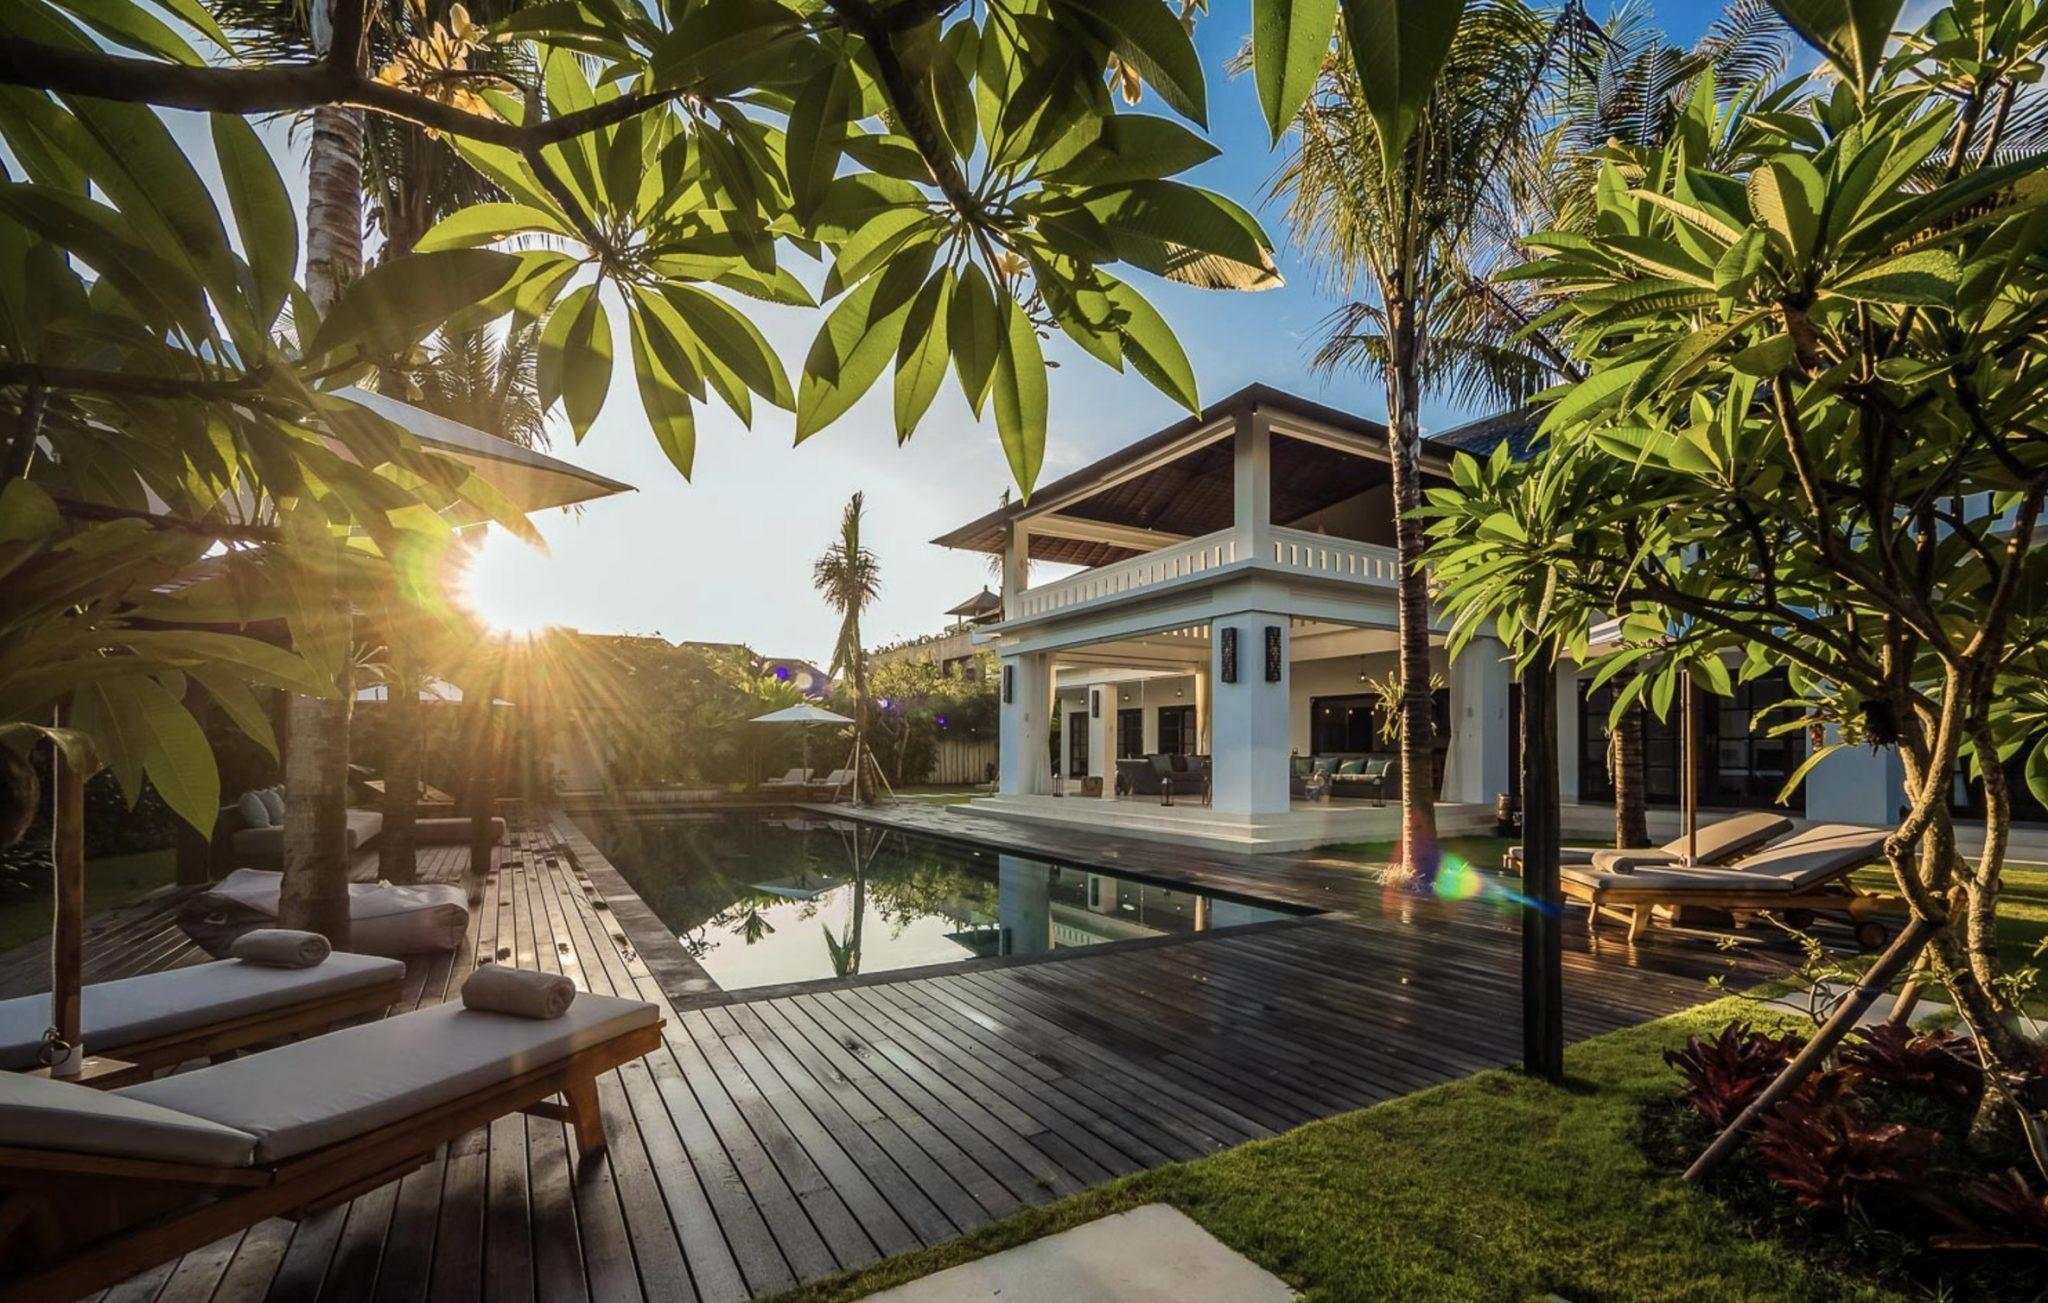 Villa Tjitrap Seminyak Bali - a great option if you're looking for where to stay in bali